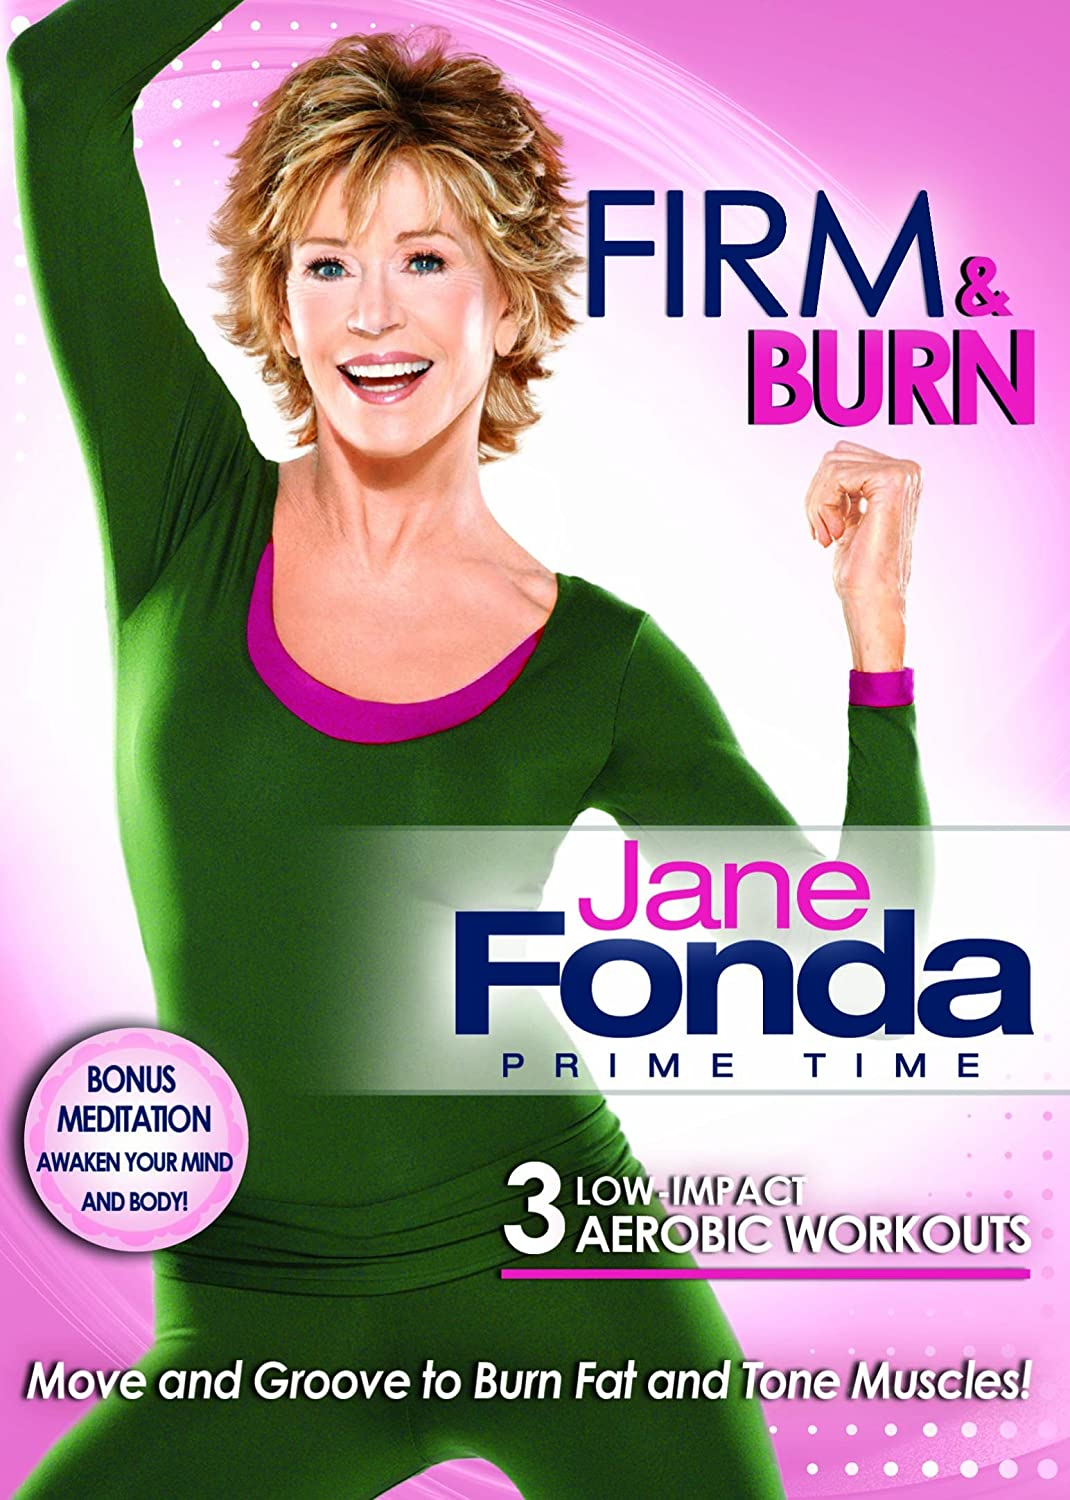 Jane Fonda Prime Time: Firm And Burn Low Impact Cardio Lionsgate Home Entertainment Exercise & Fitness